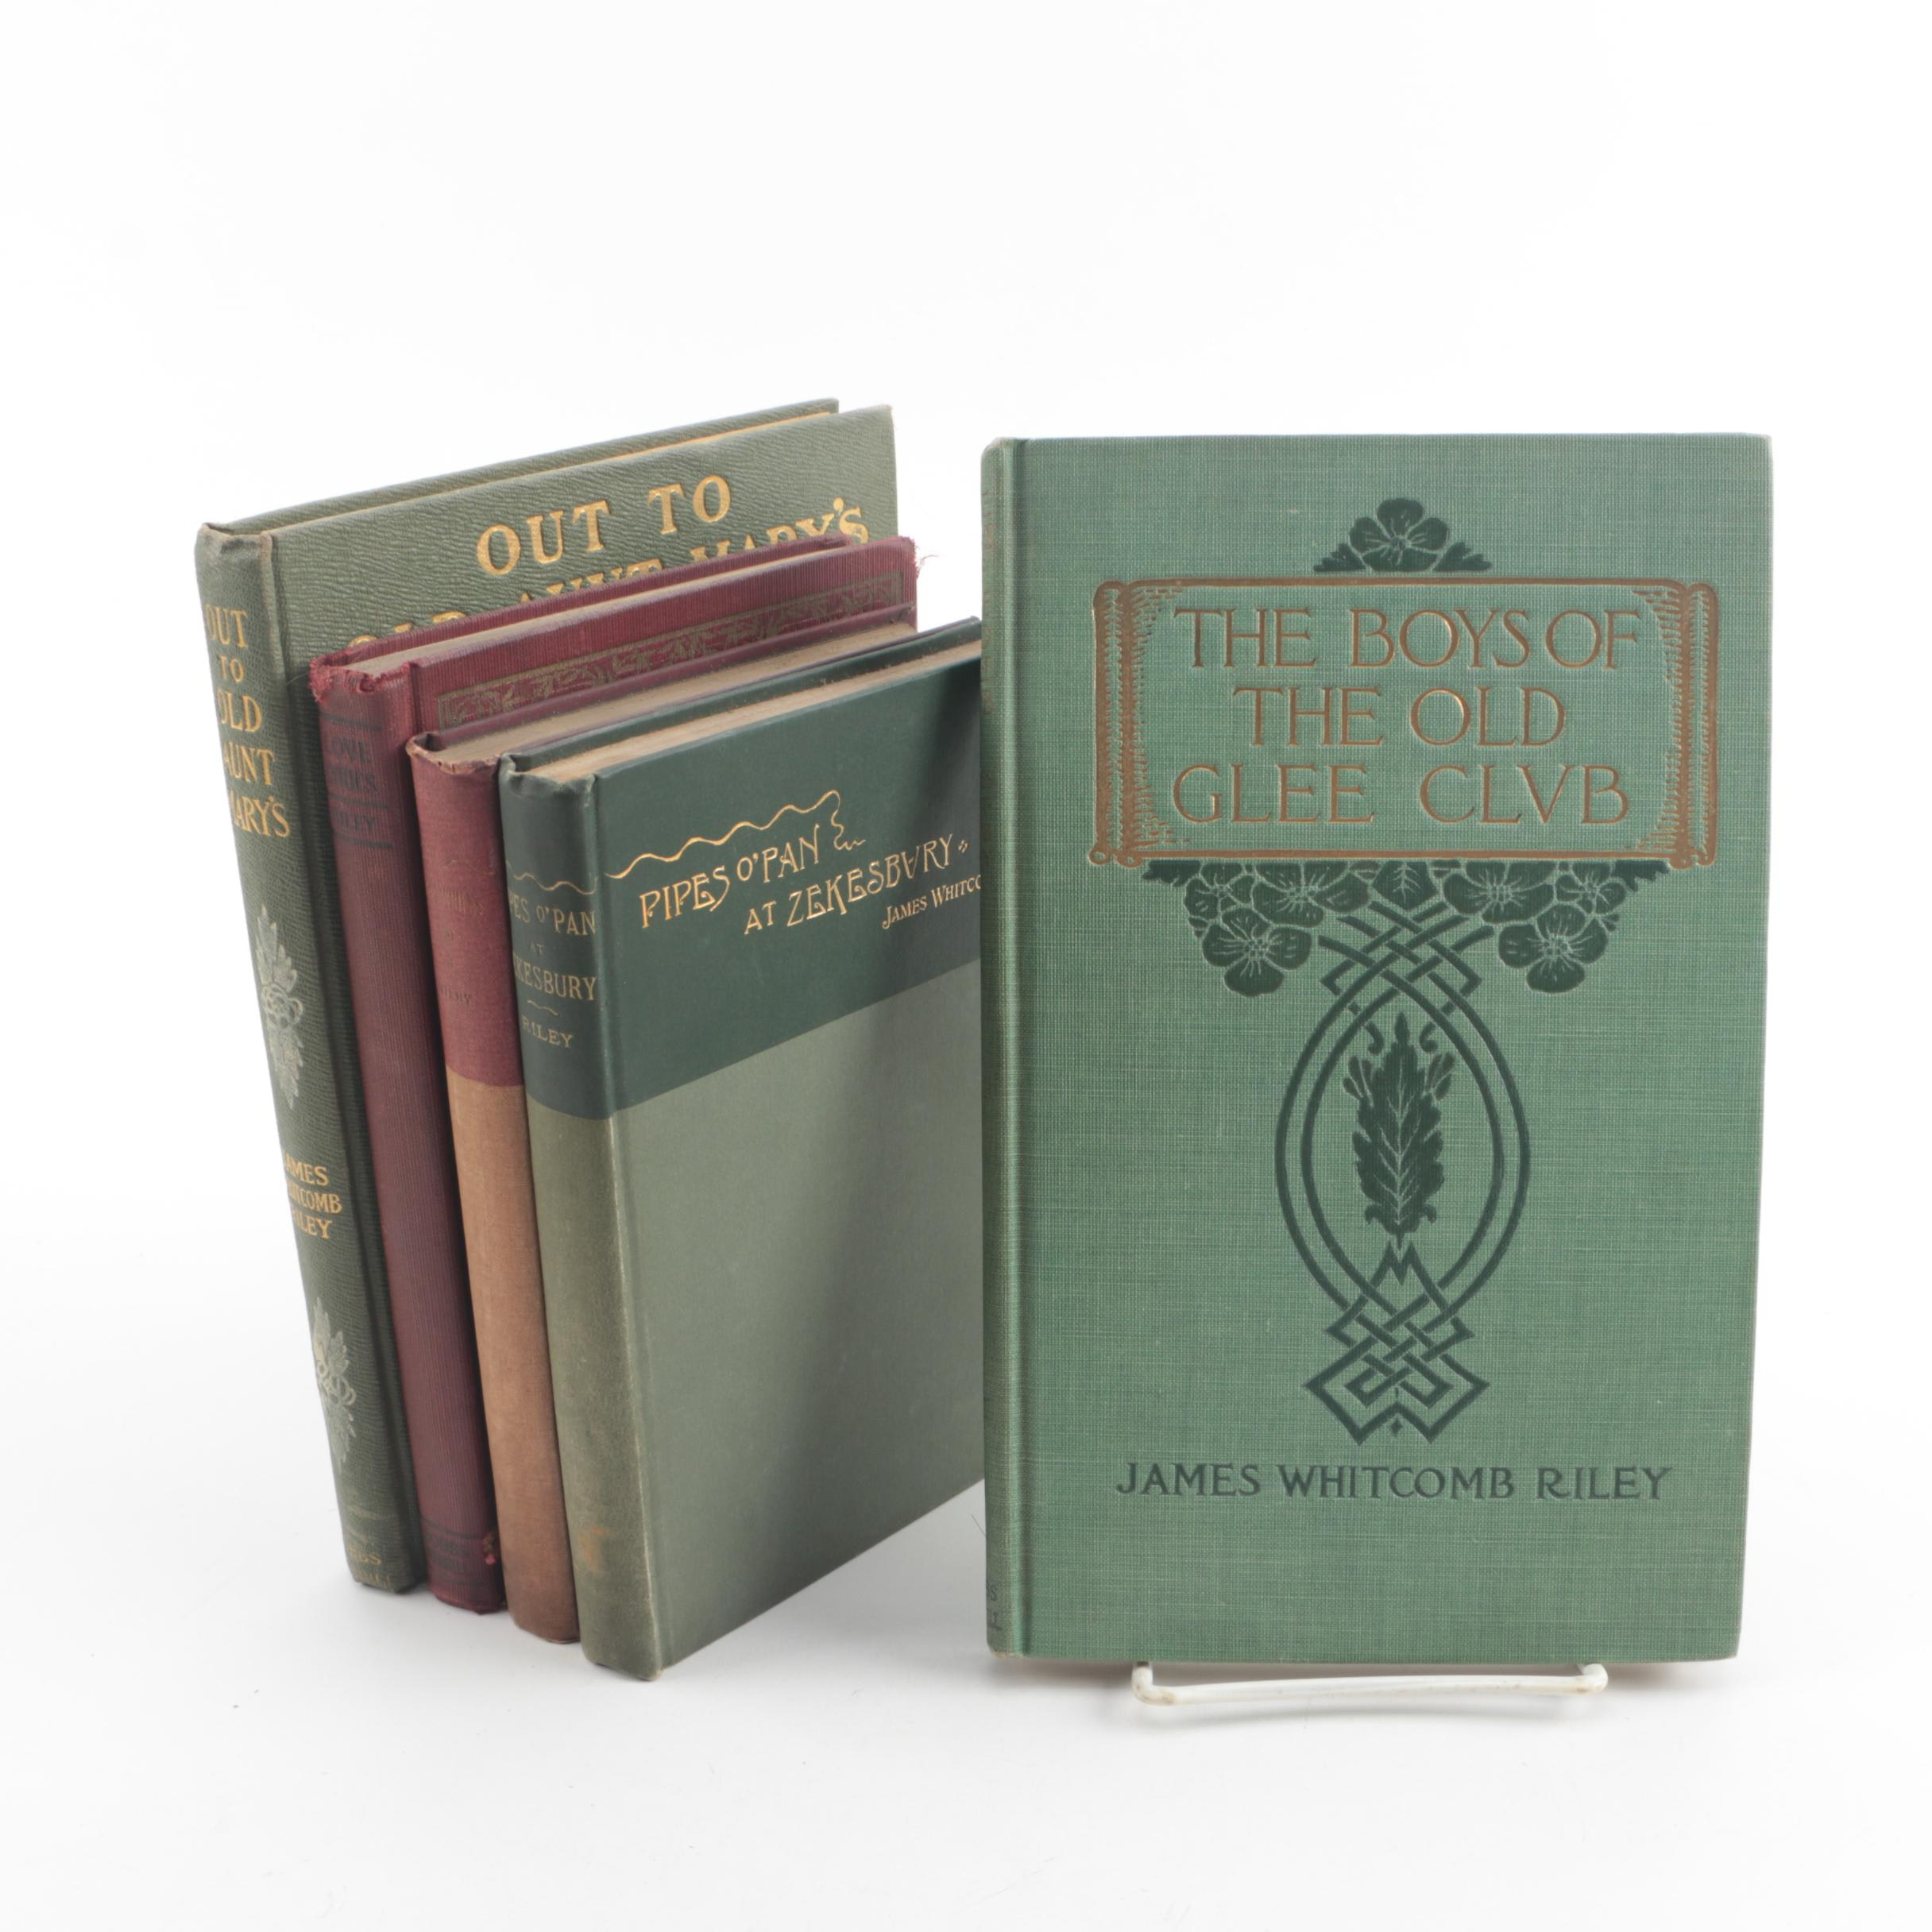 Vintage and Antique Books by James Whitcomb Riley